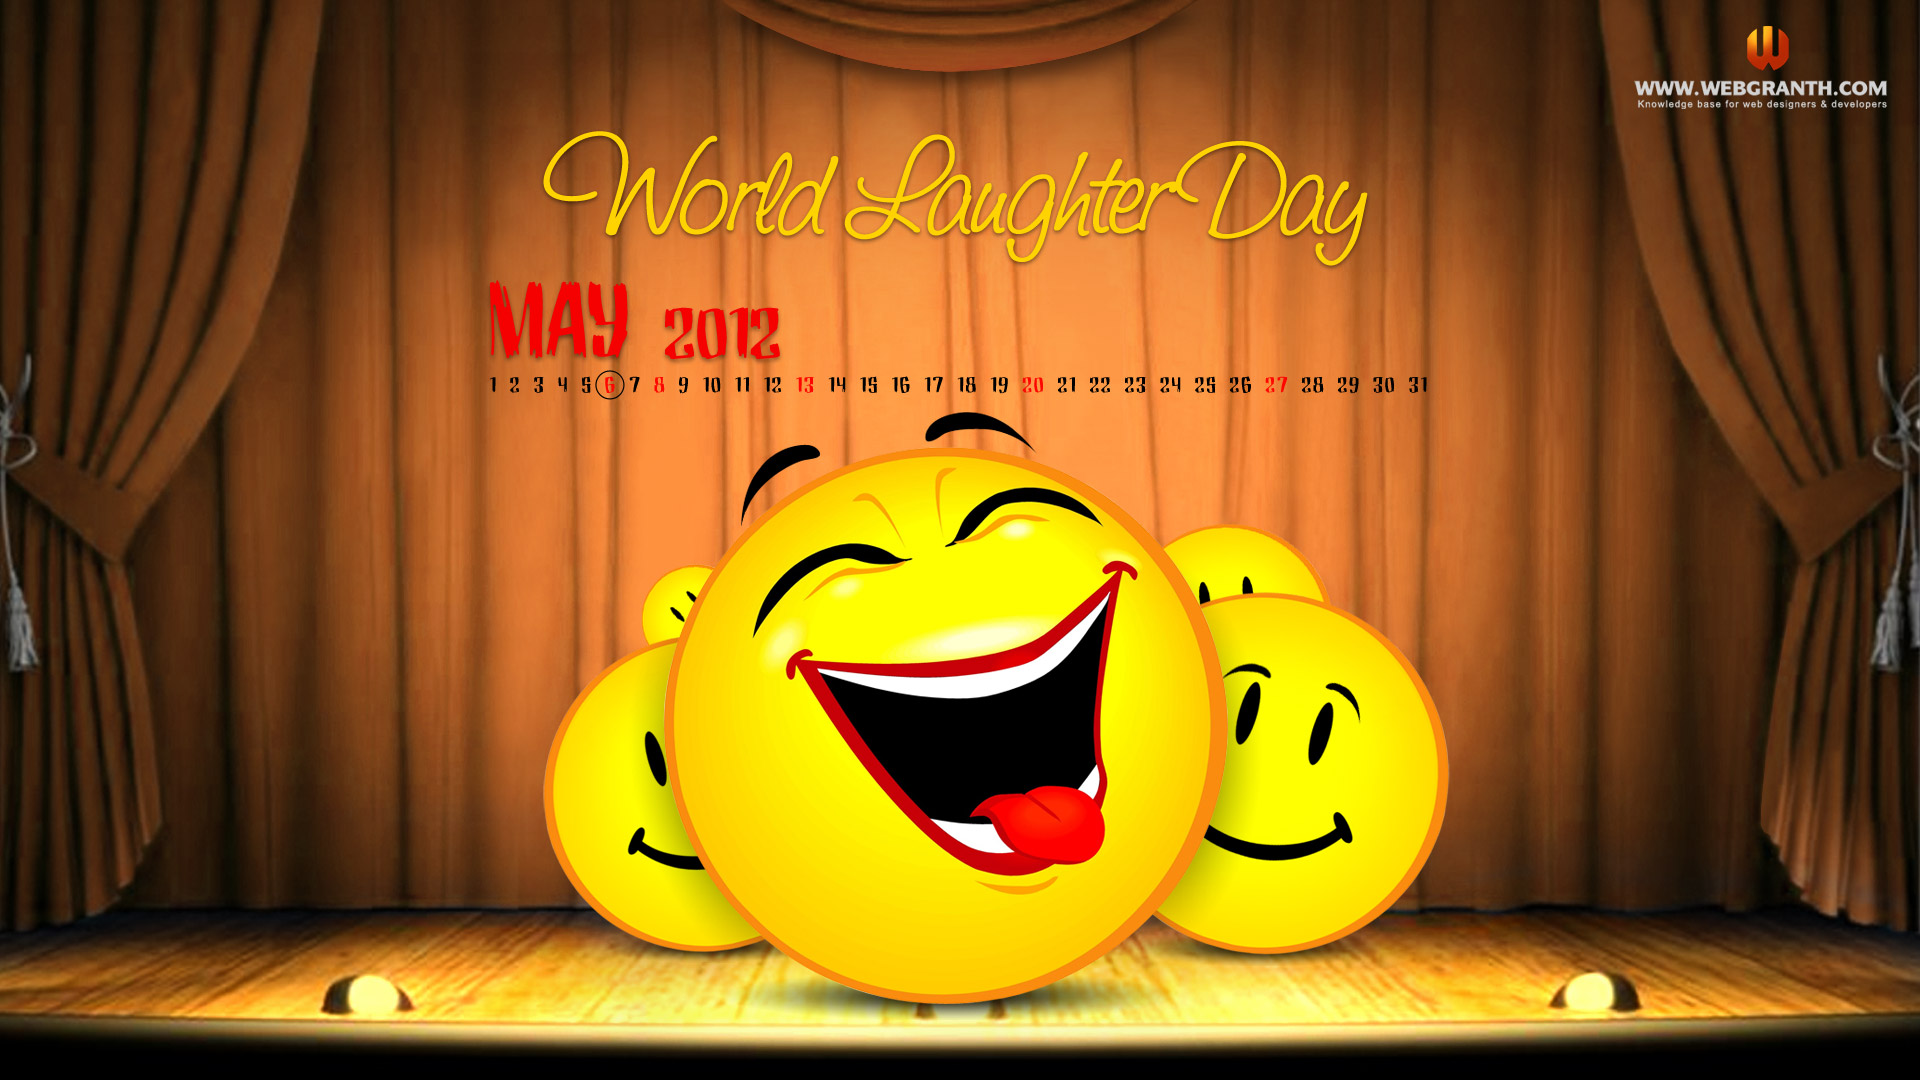 World Laughter Day Free Wallpaper Download Calendar View